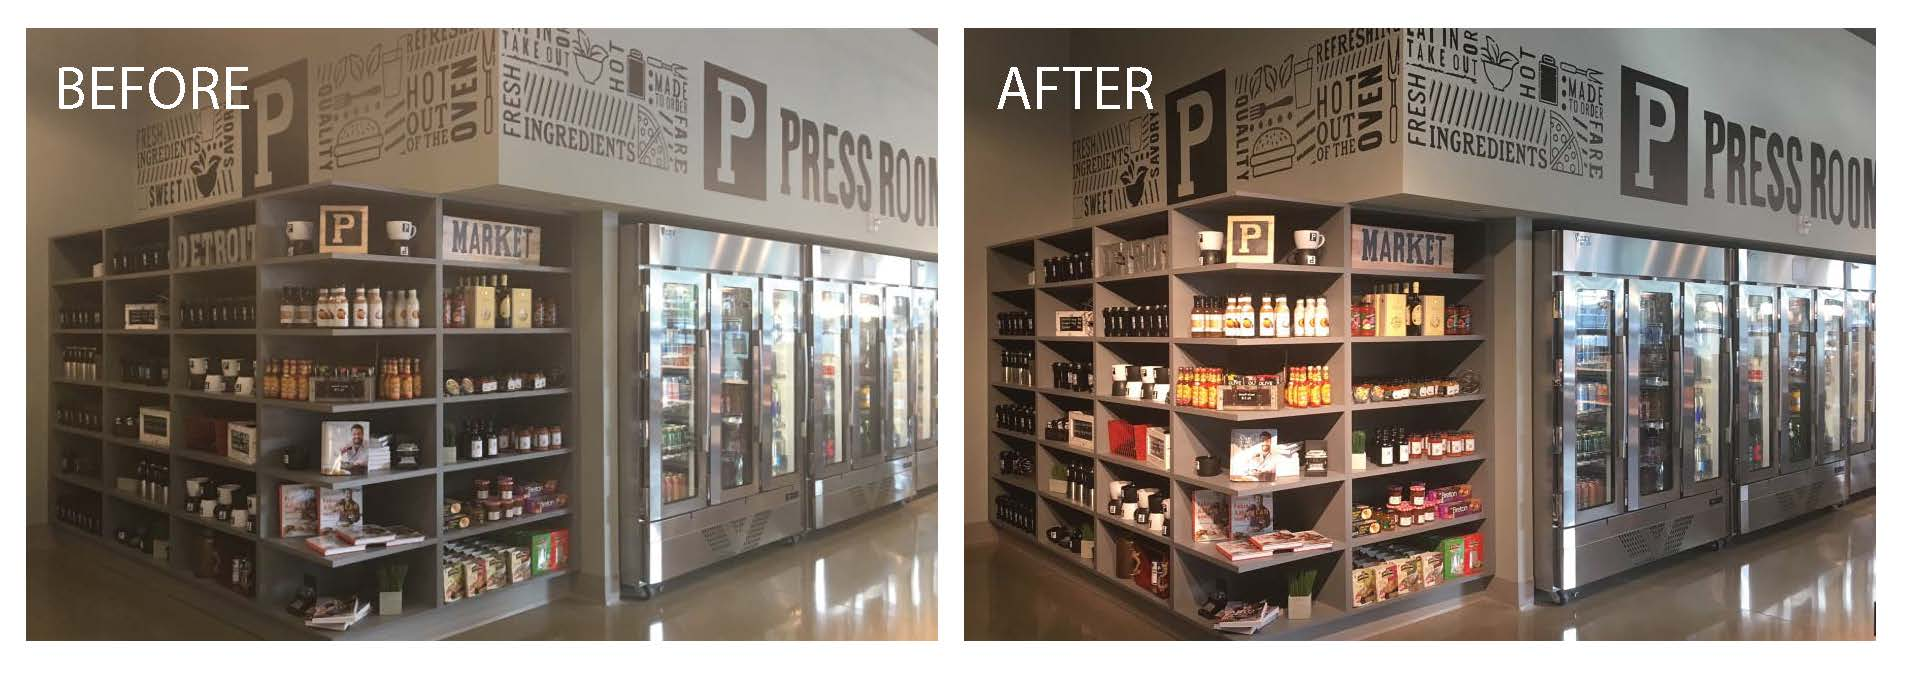 Illuminart Provides Architectural Lighting Design Solutions for Detroit Press Room Café and Market